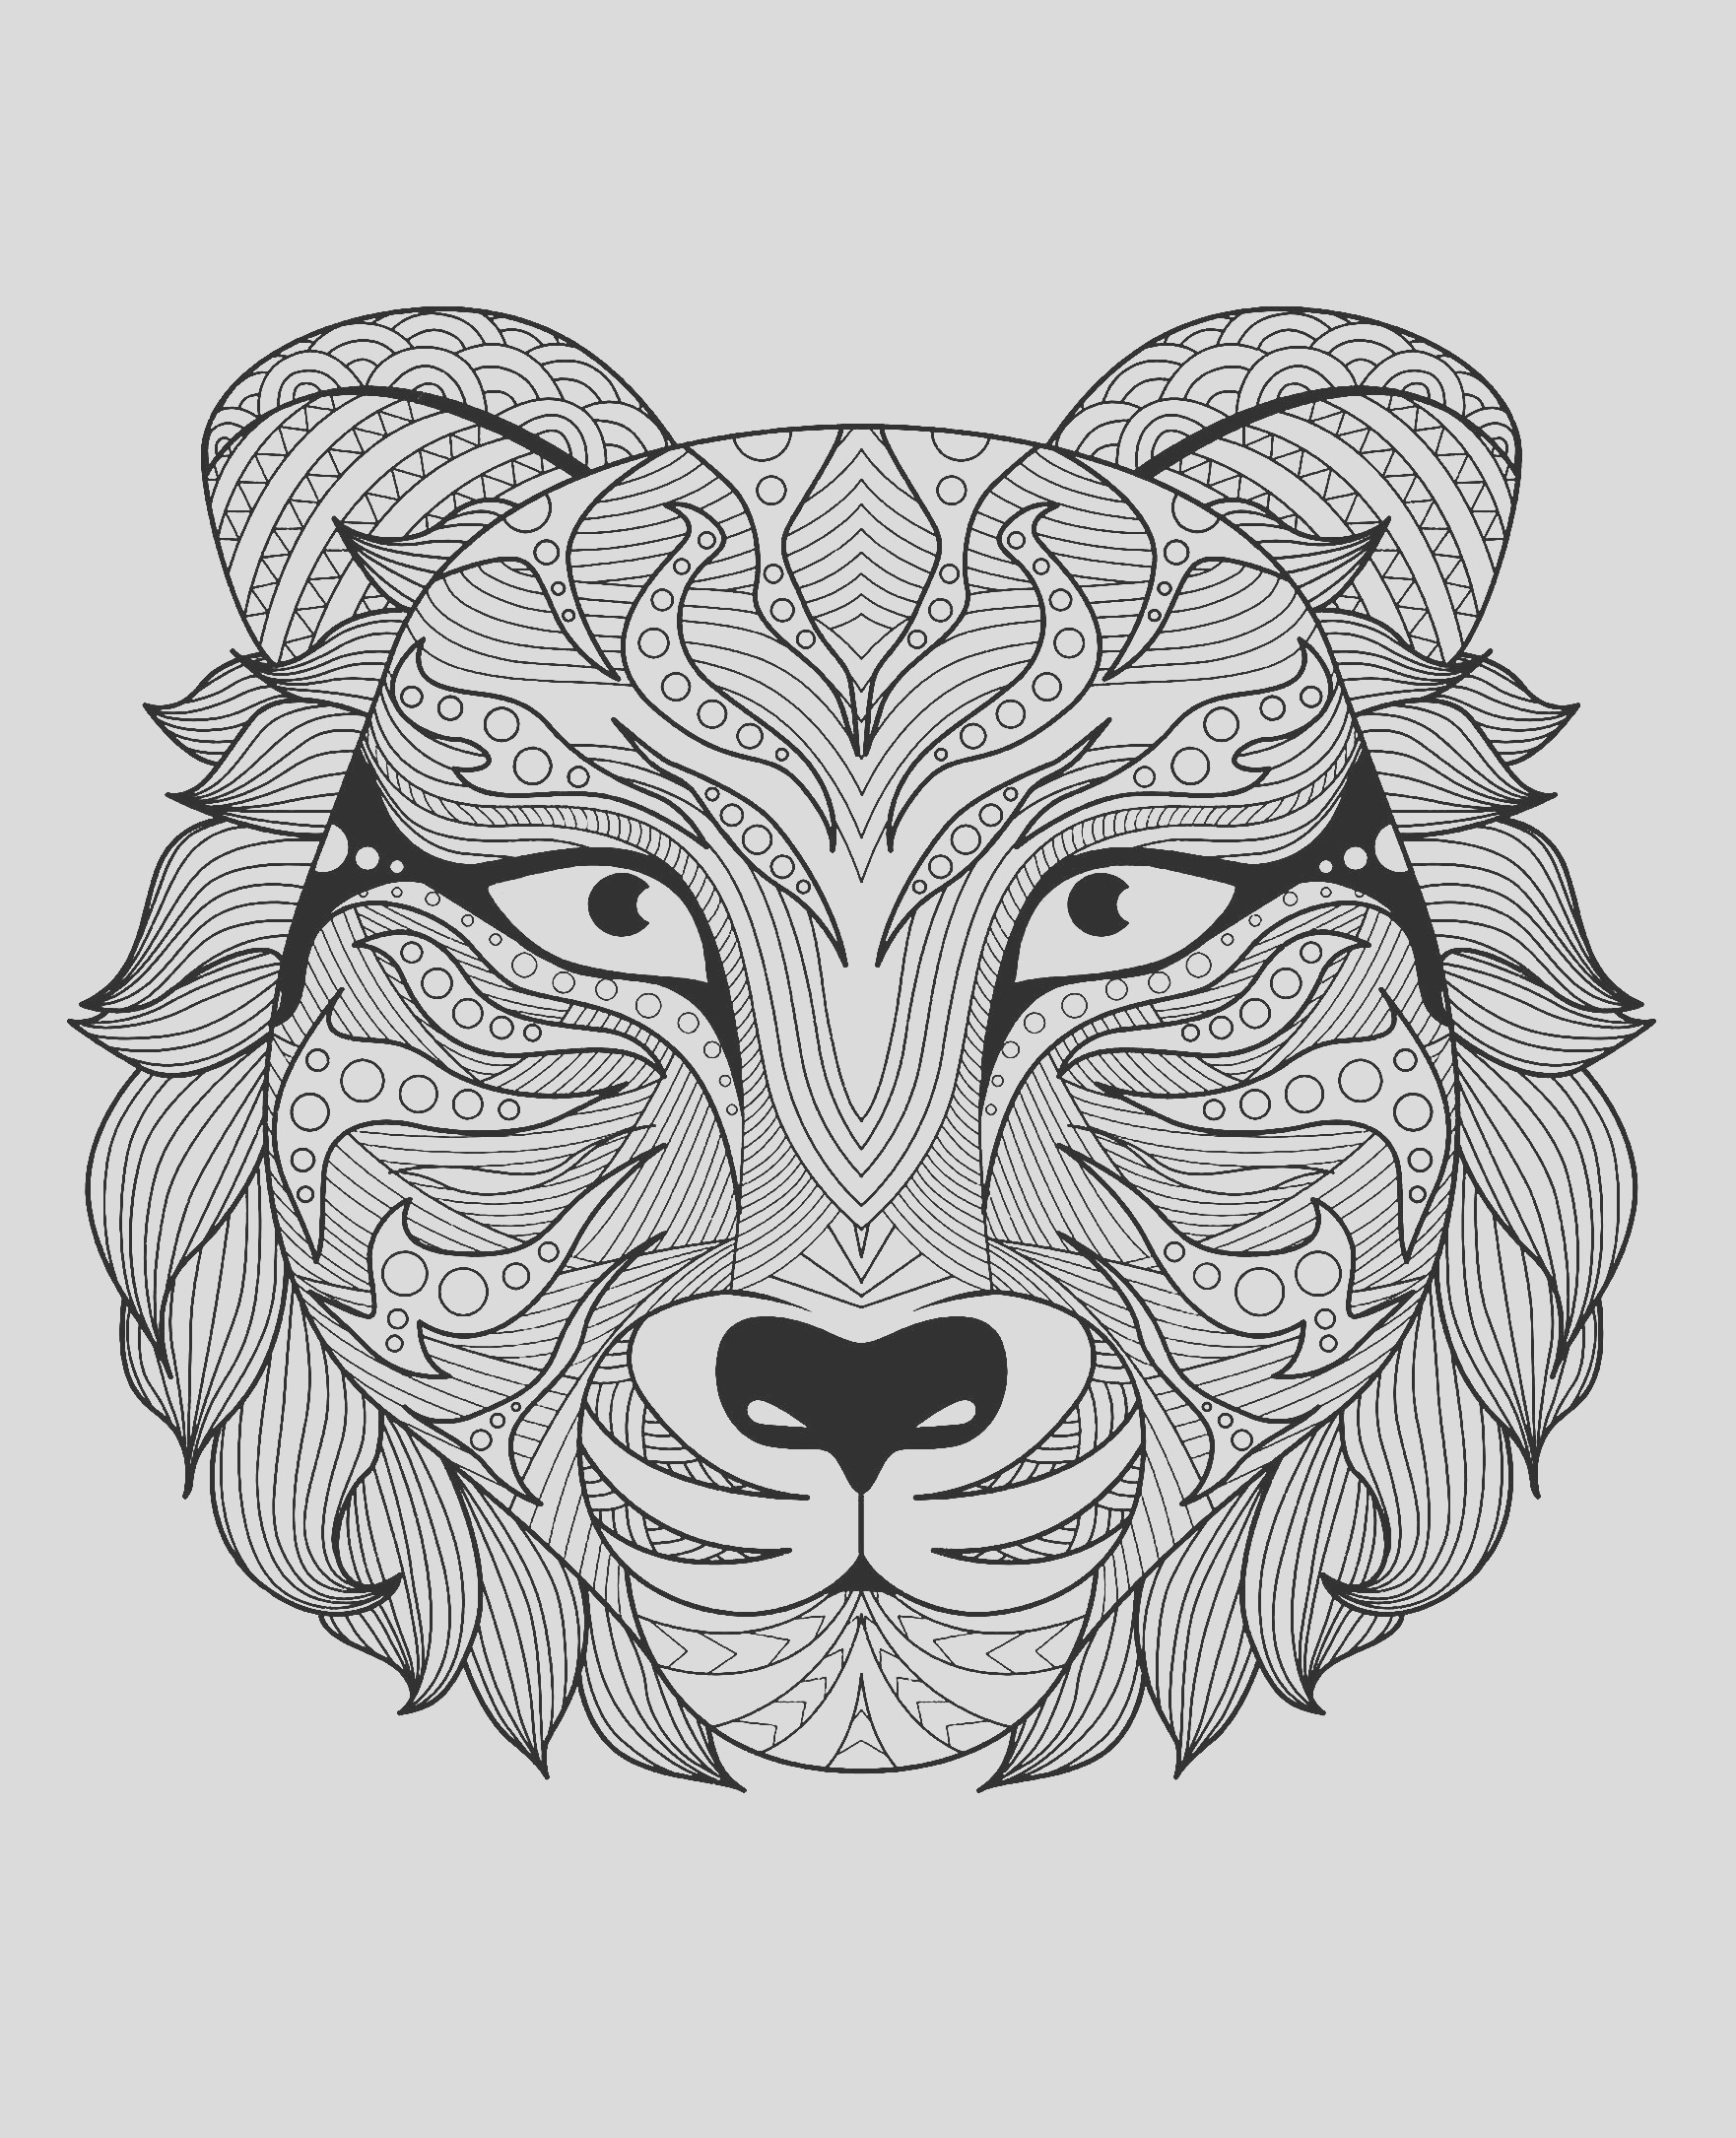 image=tigers coloring page adult tiger head 1